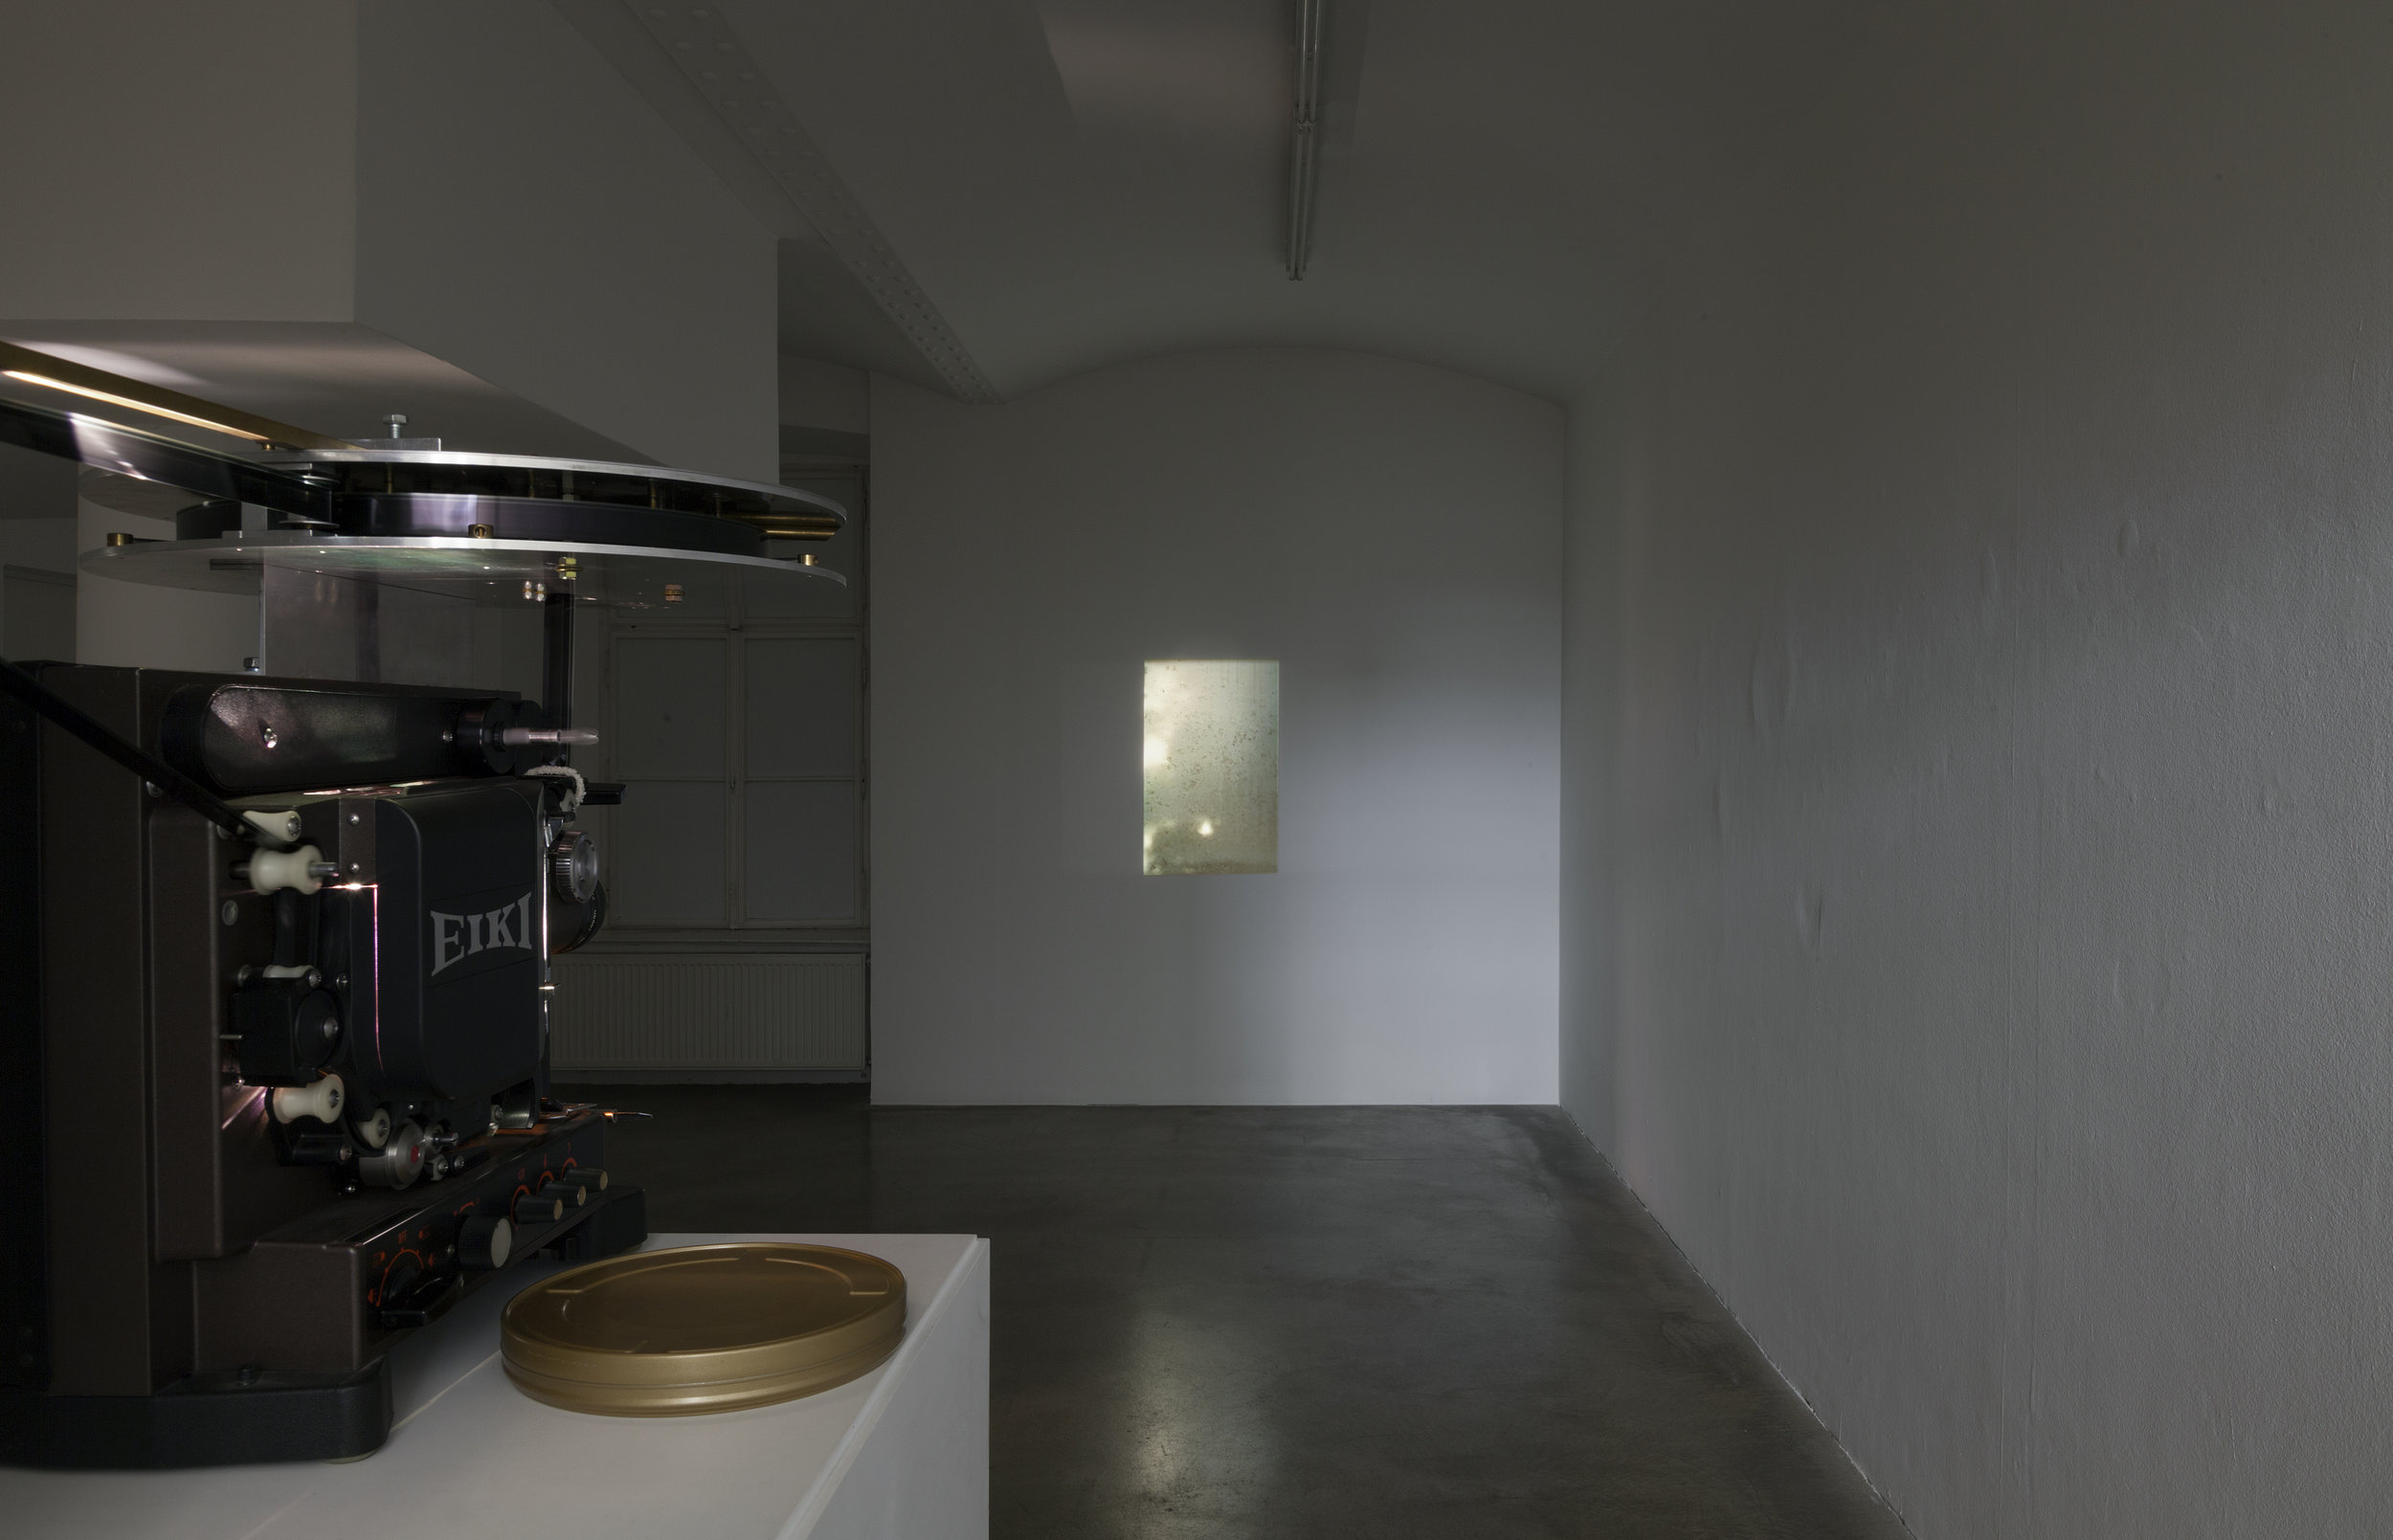 Exhibition View, Galerie Martin Janda, A Mouse Drowned in a Honey Pot curated by_Magalí Arriola, Photo: Markus Wirgitter, Vienna, 2014